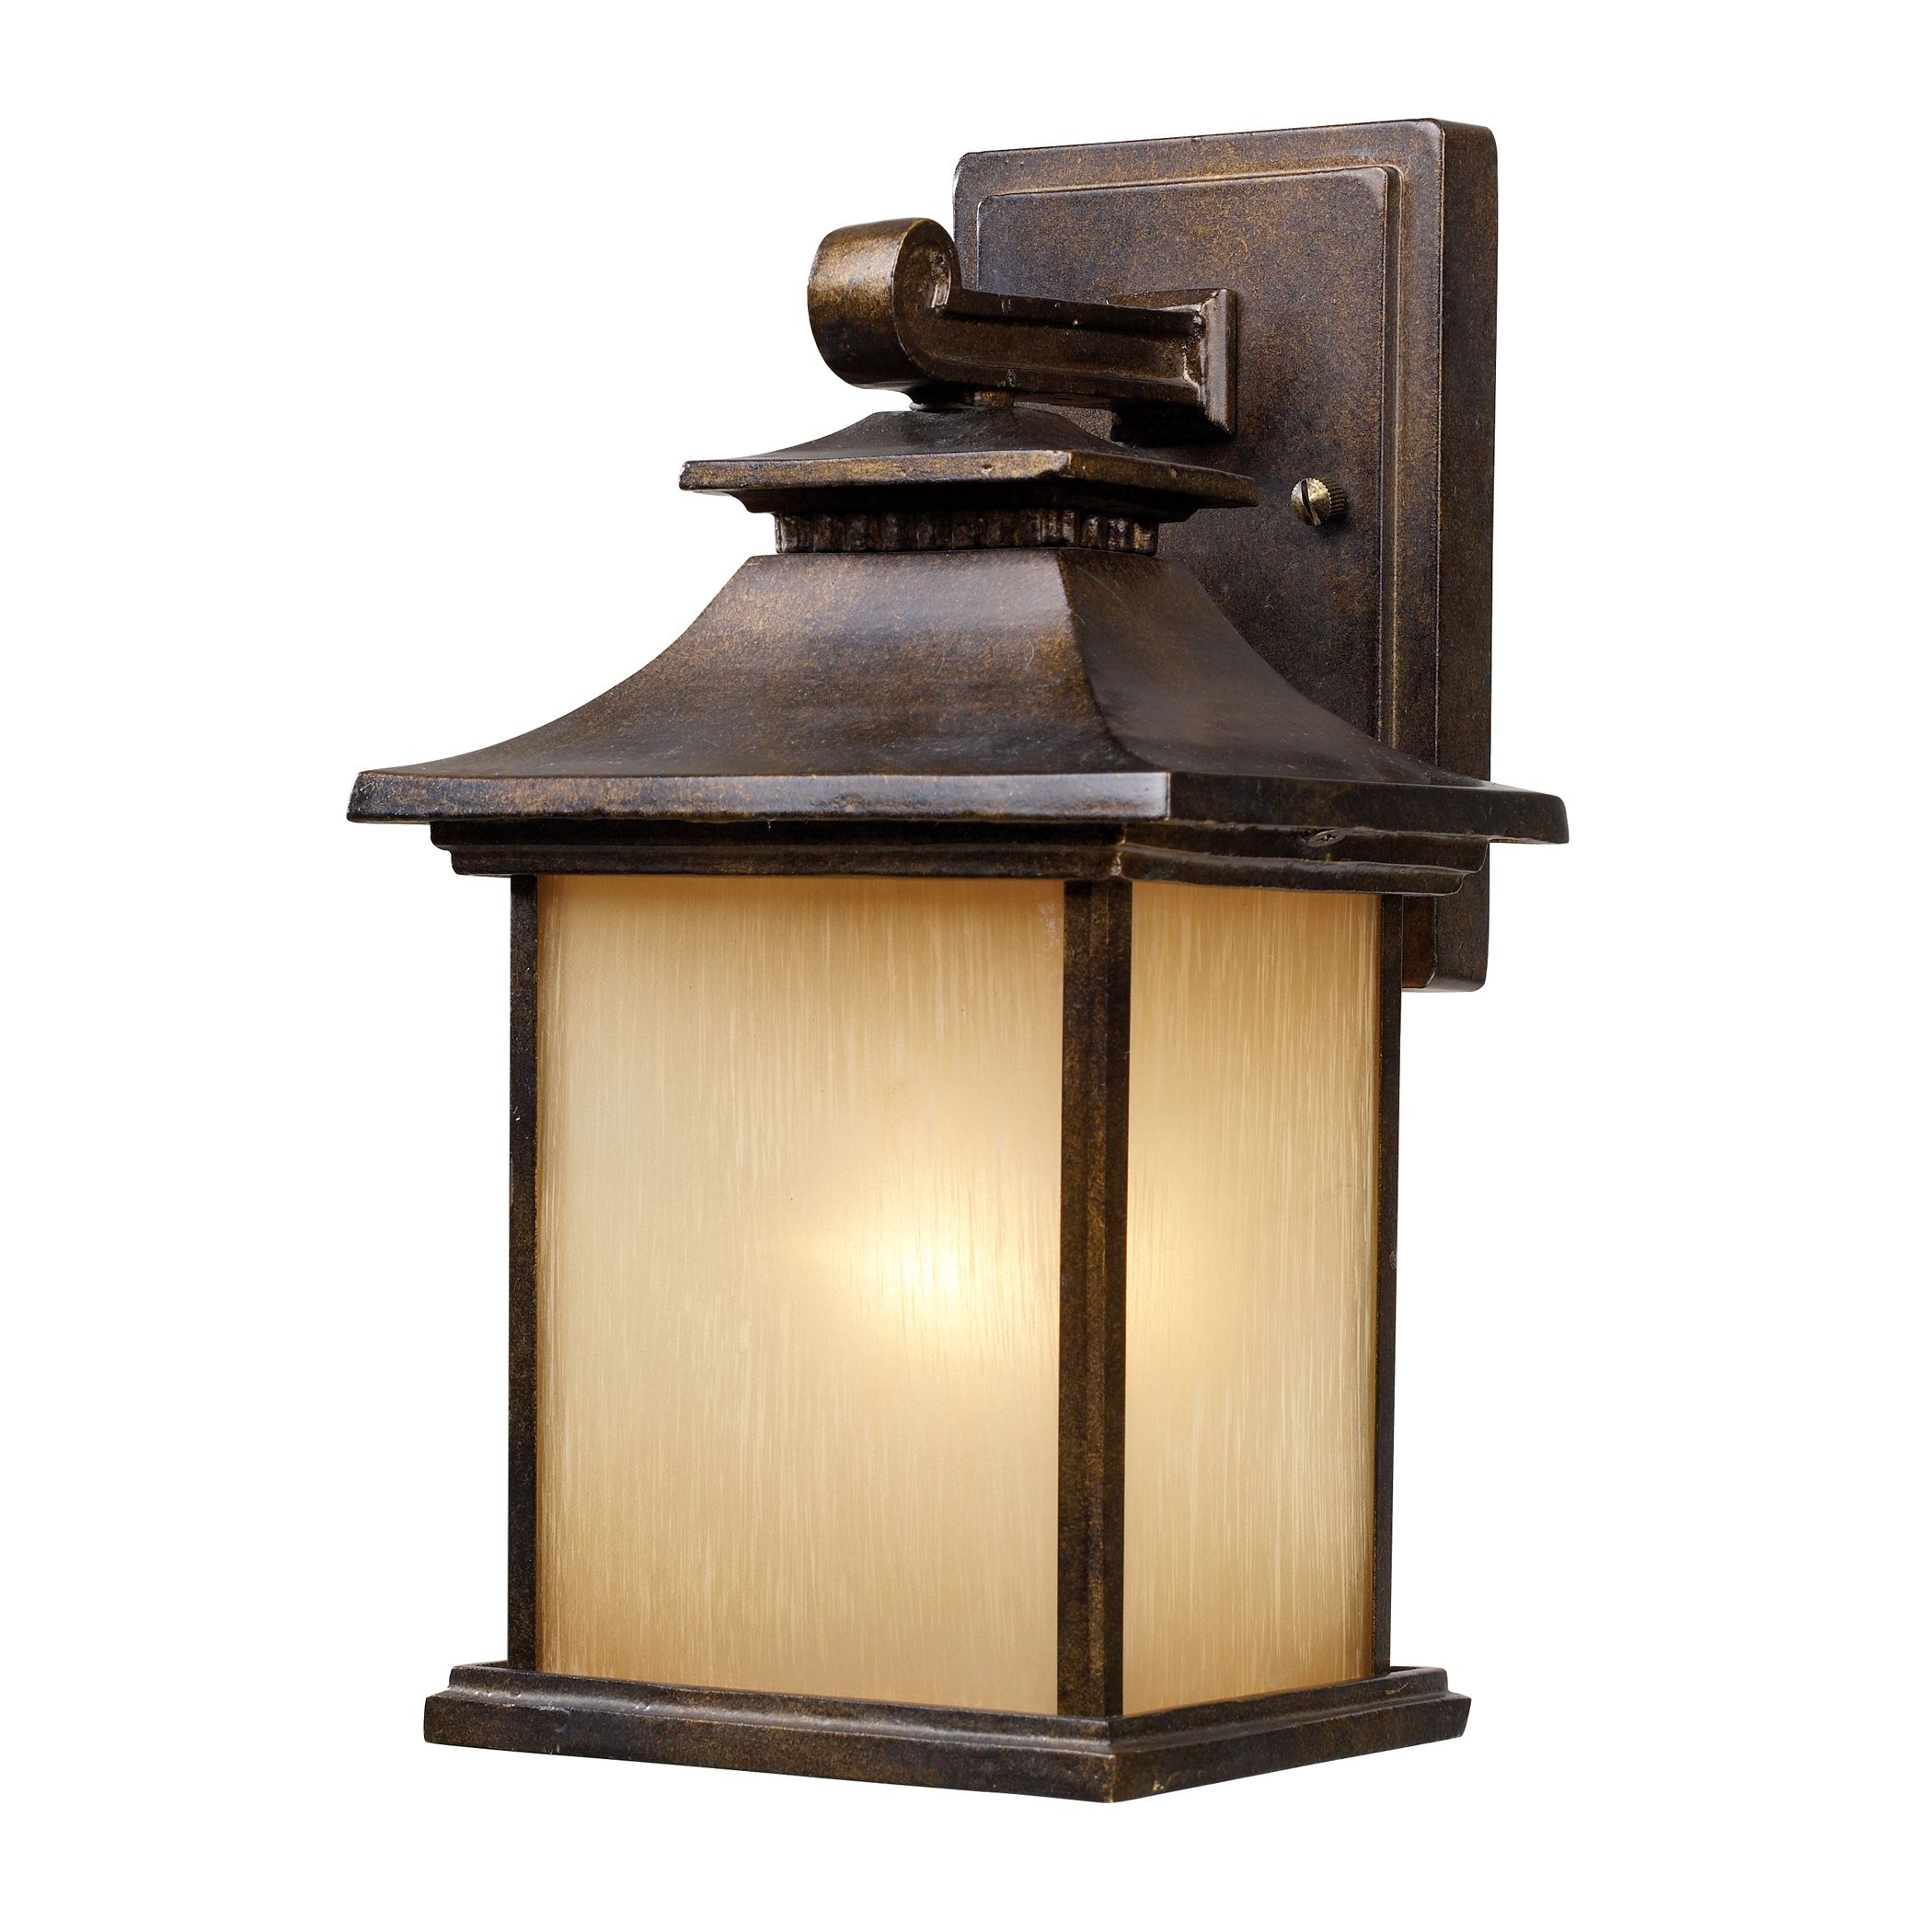 42180/1 San Gabriel 1-Light Outdoor Sconce in Hazelnut Bronze